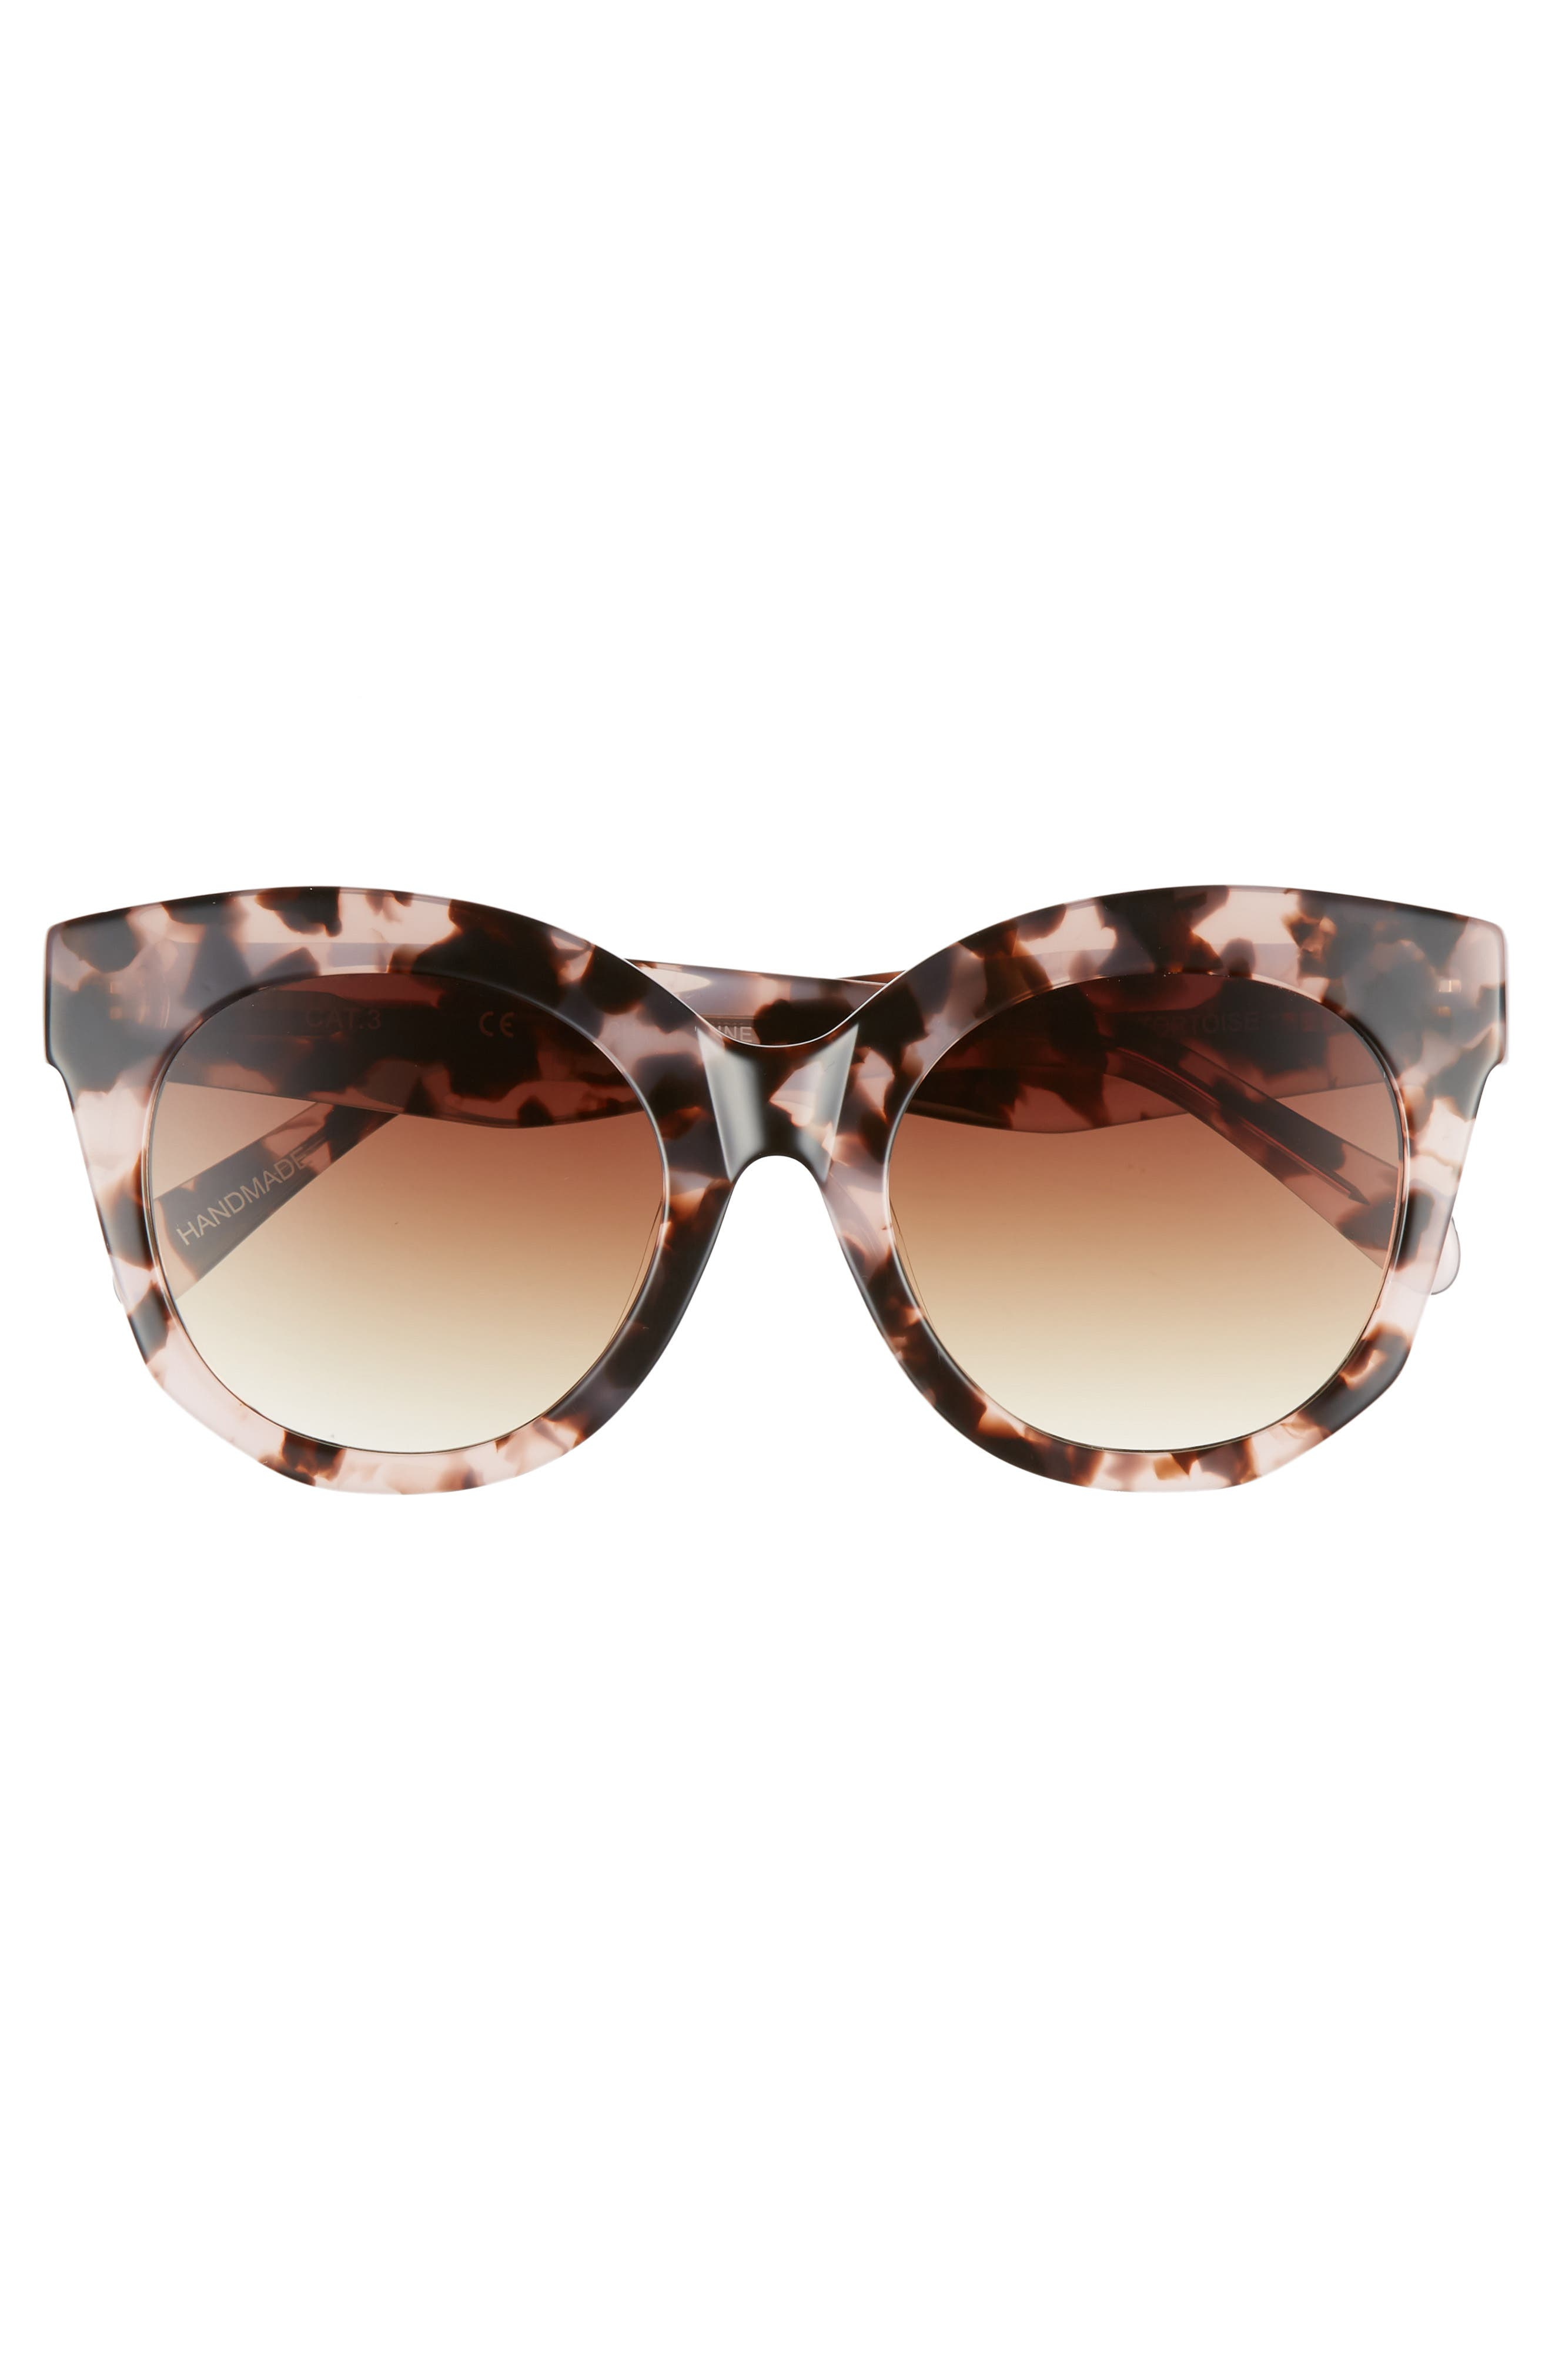 Gillian 52mm Sunglasses,                             Alternate thumbnail 2, color,                             Pink Tortoise